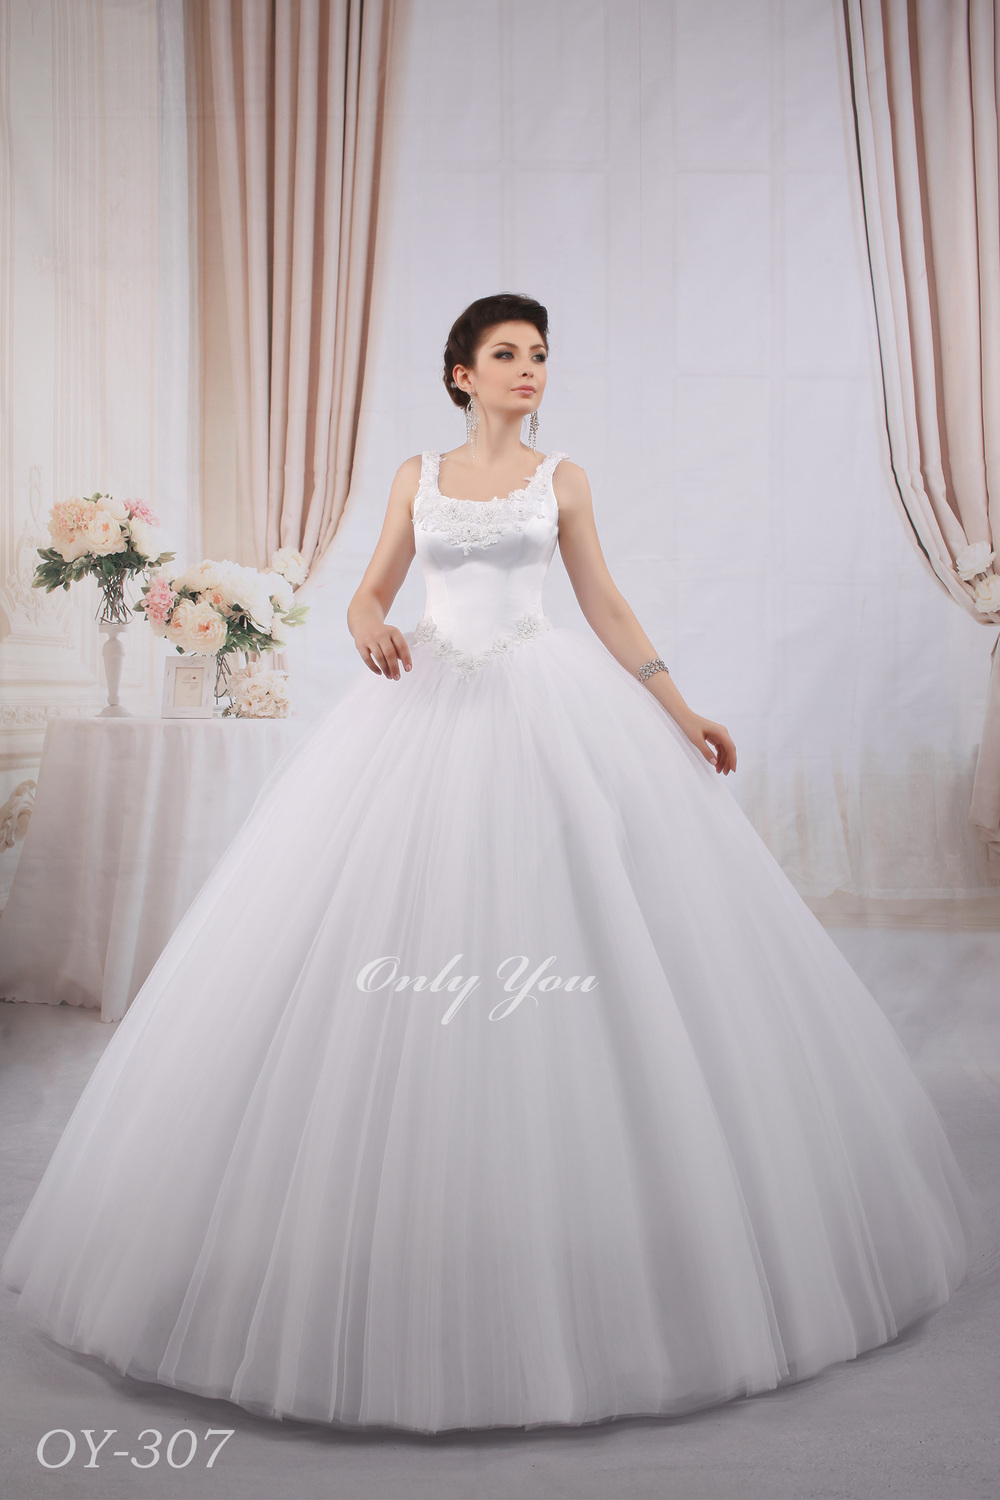 Luxury Ball Gown 10 Mat Tulle Layers Lux Satin Corset T Shirt Cut